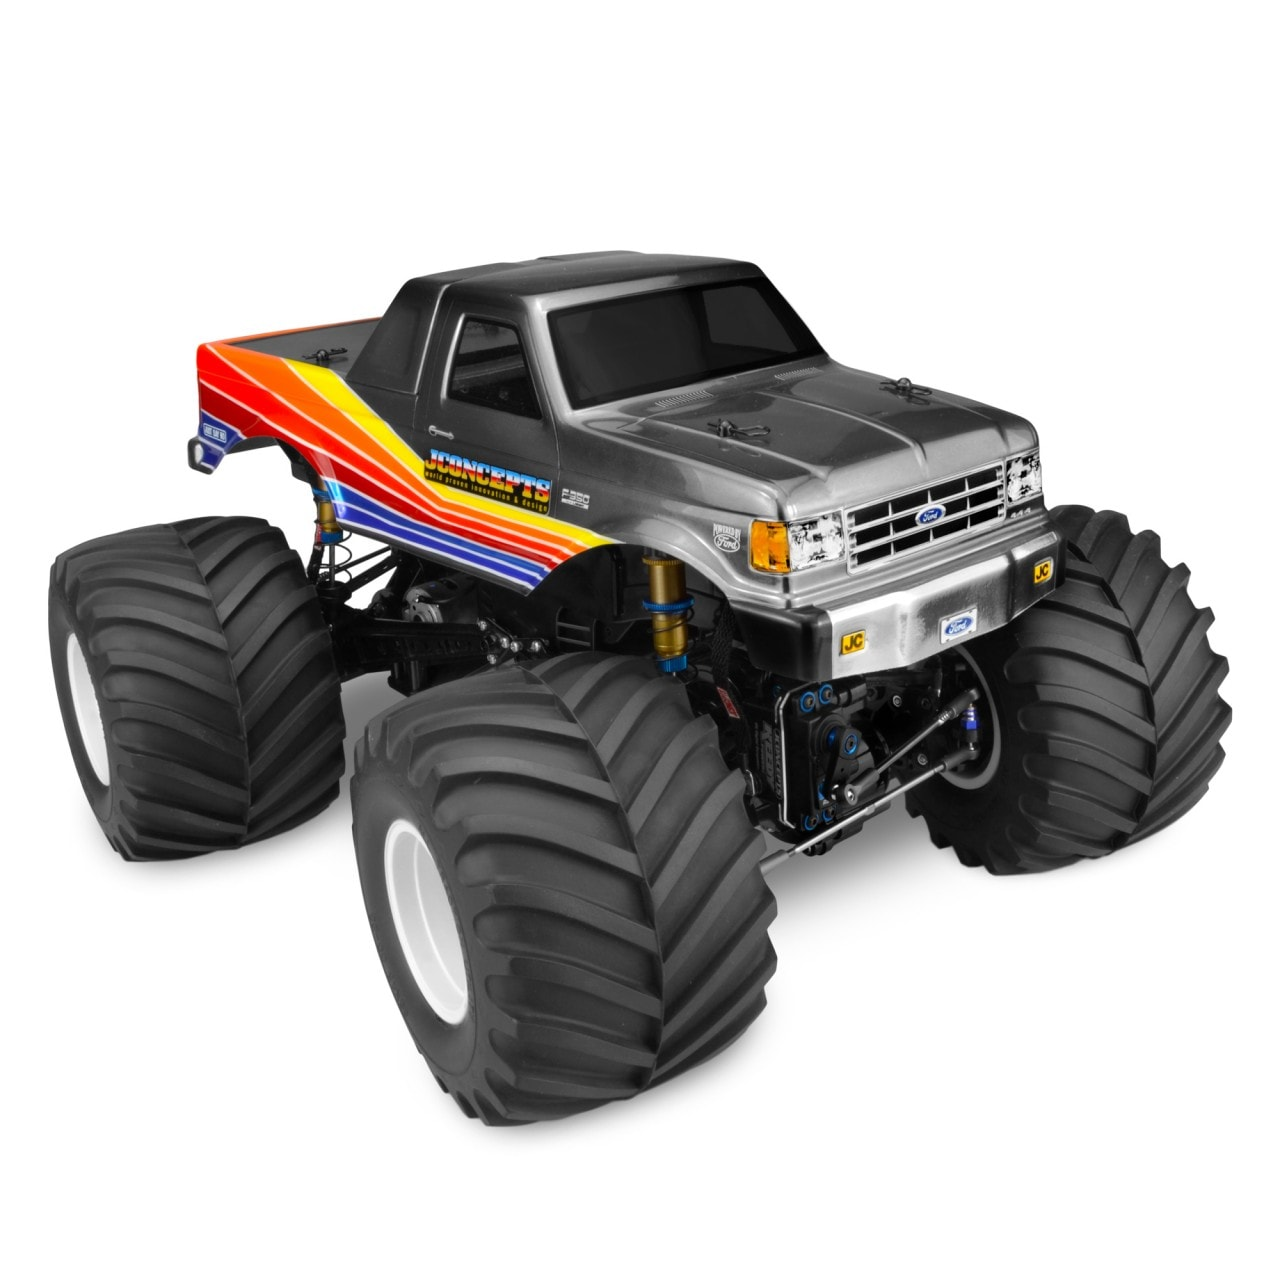 JConcepts Goes Back in Time with Their 1989 Ford F-250 Body